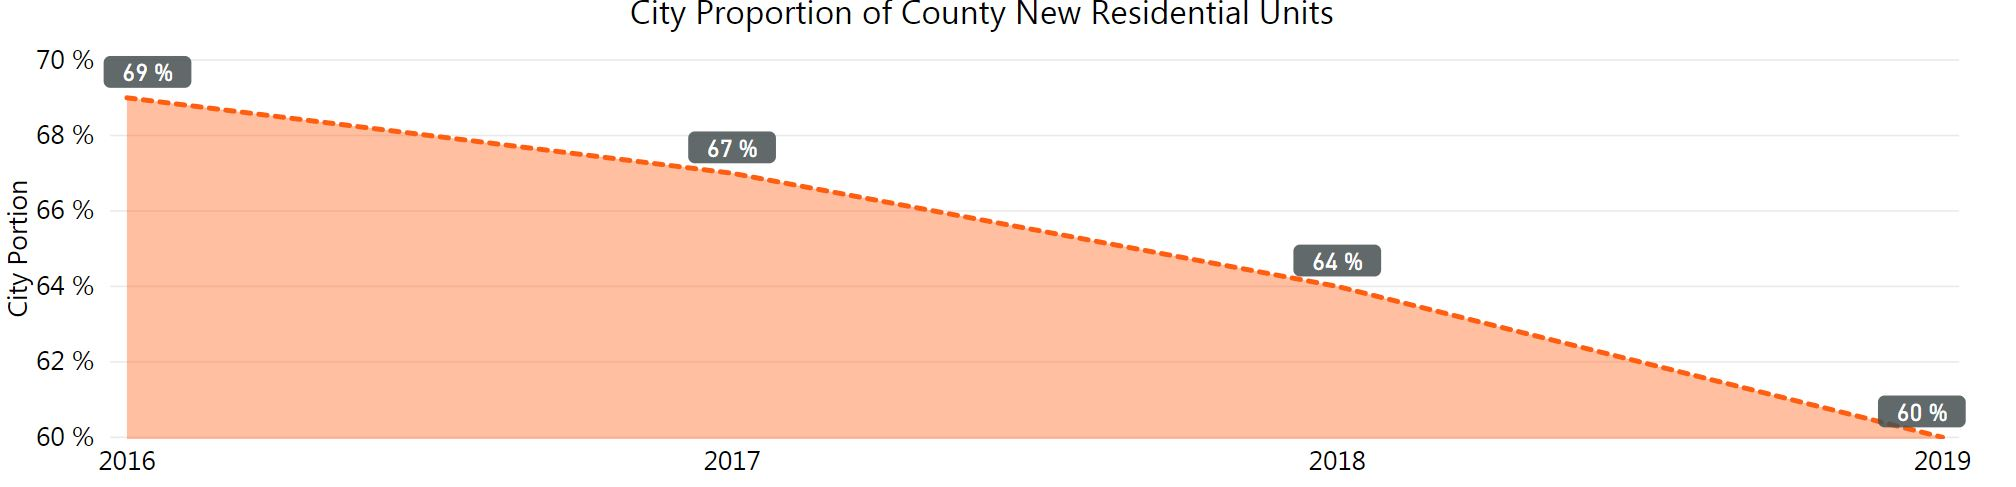 graph of percentage that city represents in new development within the county. Decreasing from 2016 to 2019. 60& in 2019